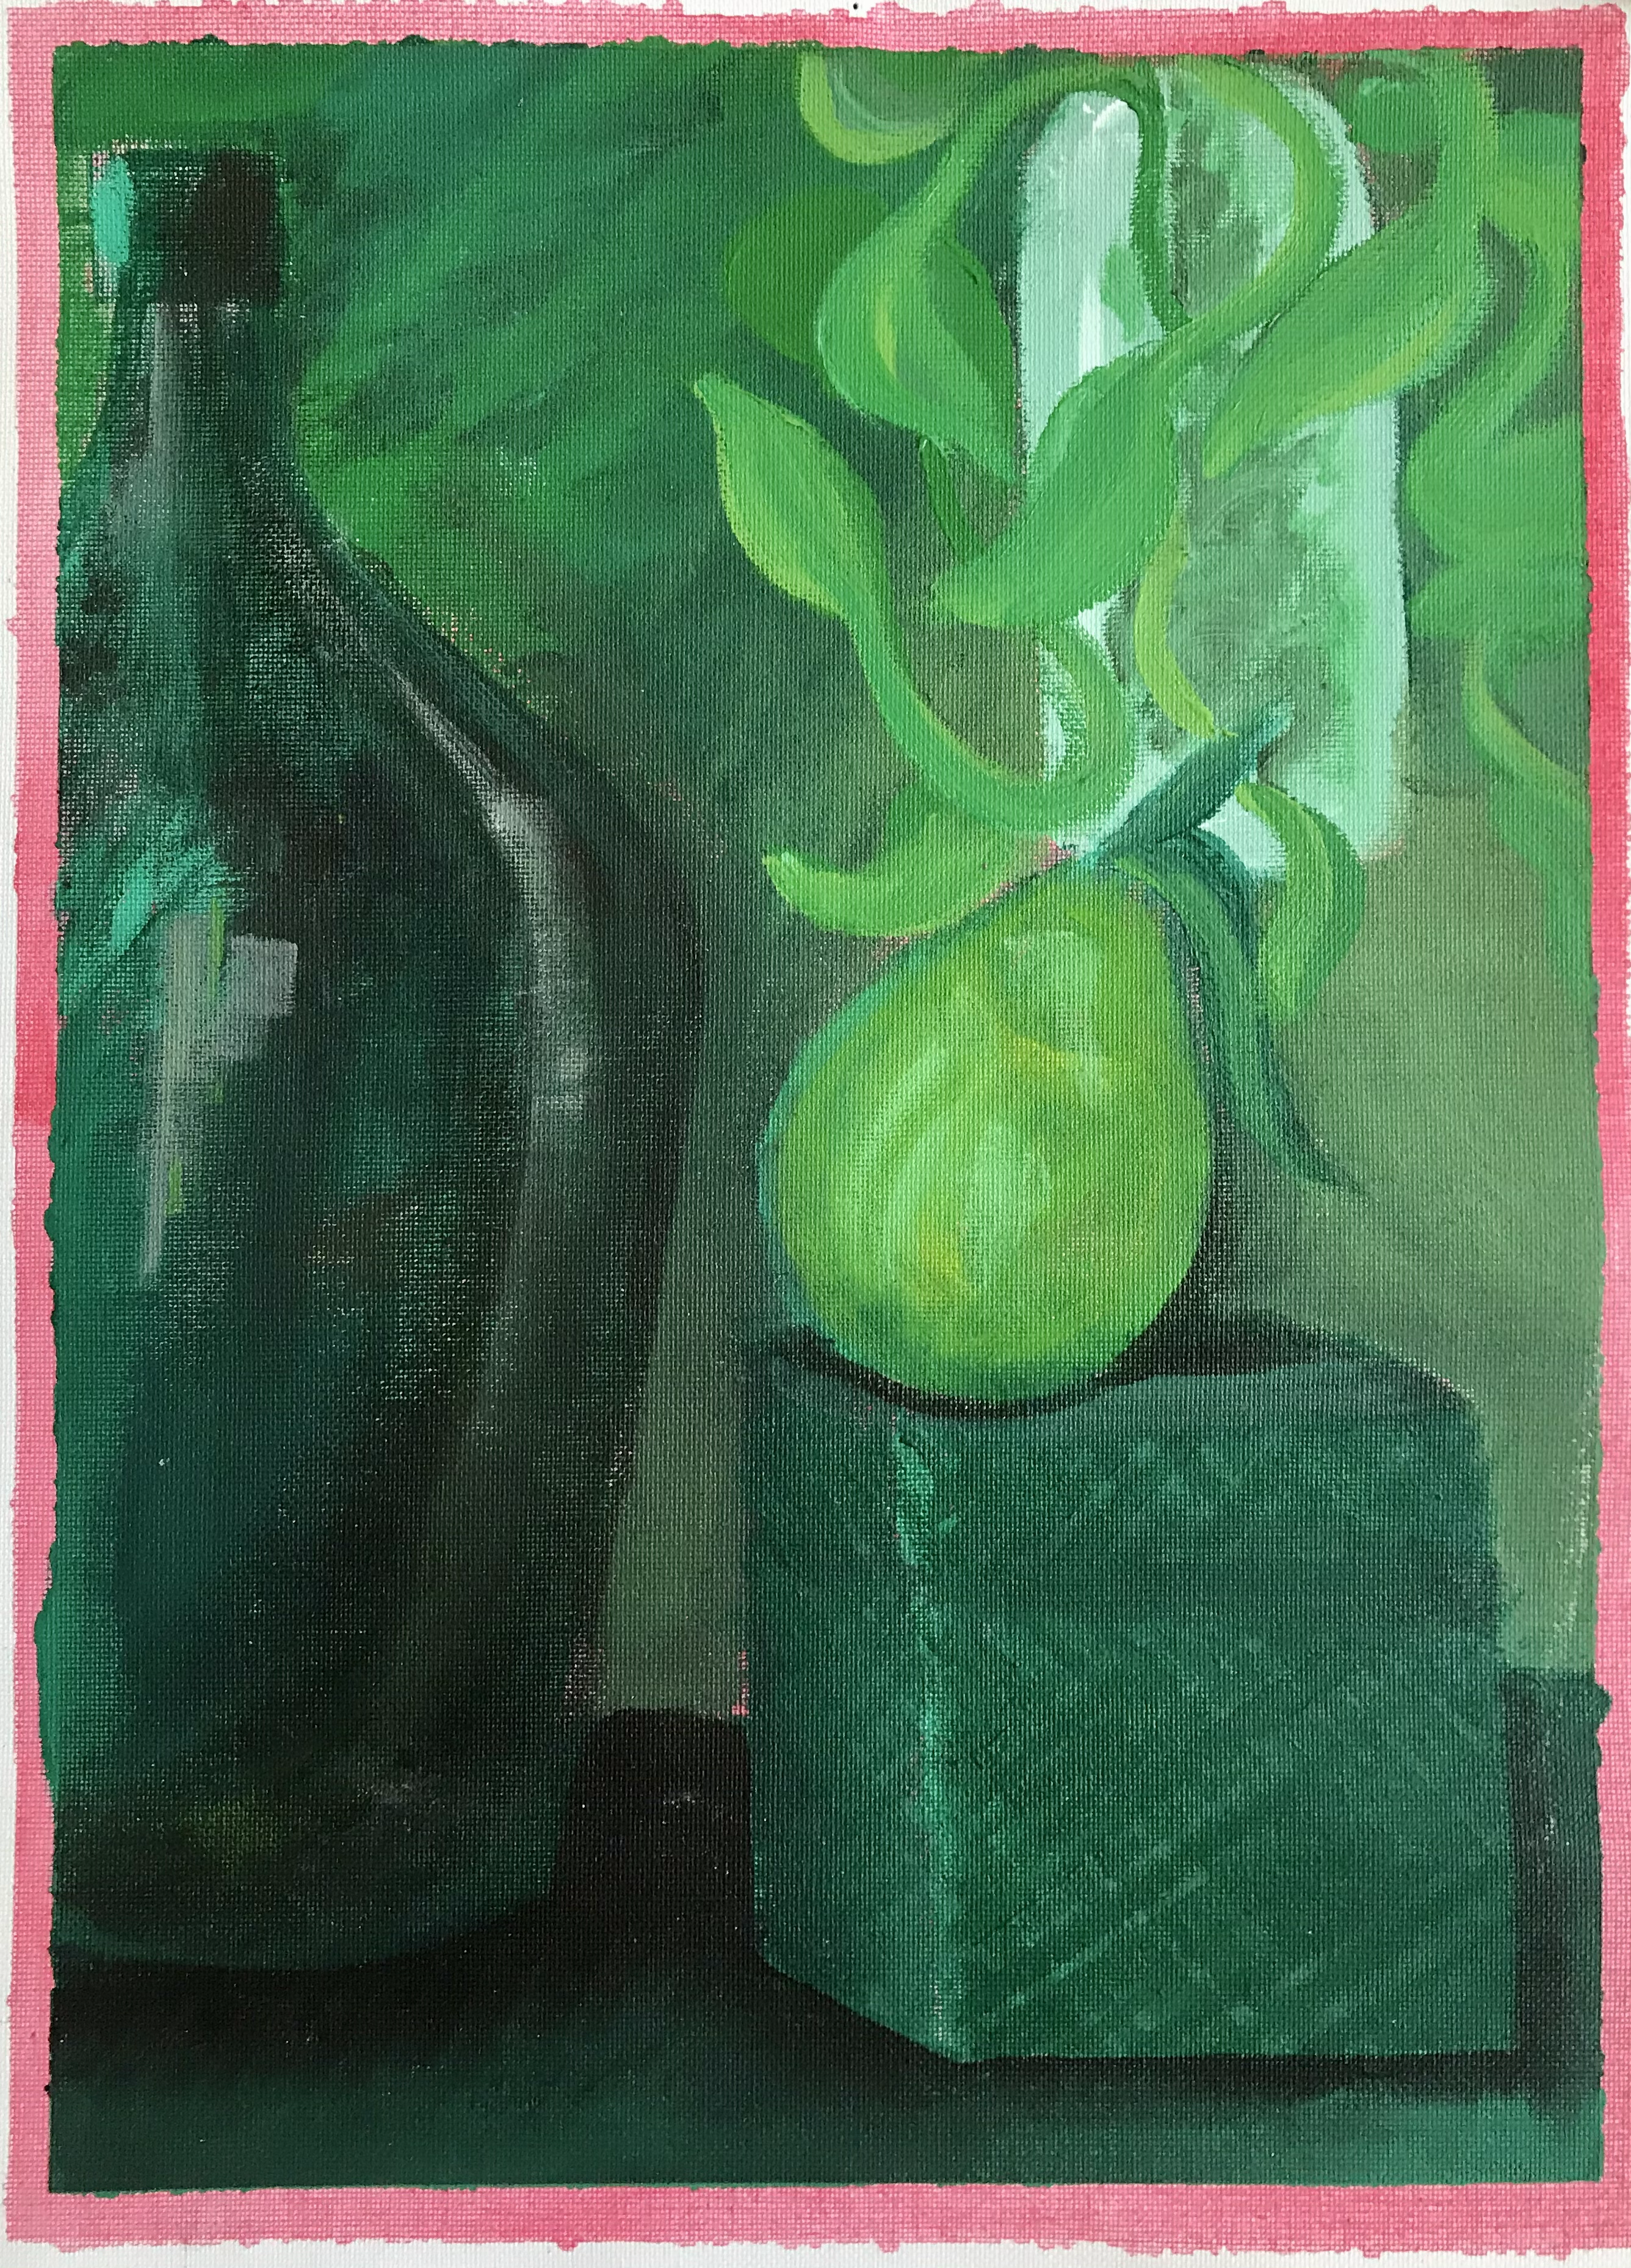 Studio Painting Green